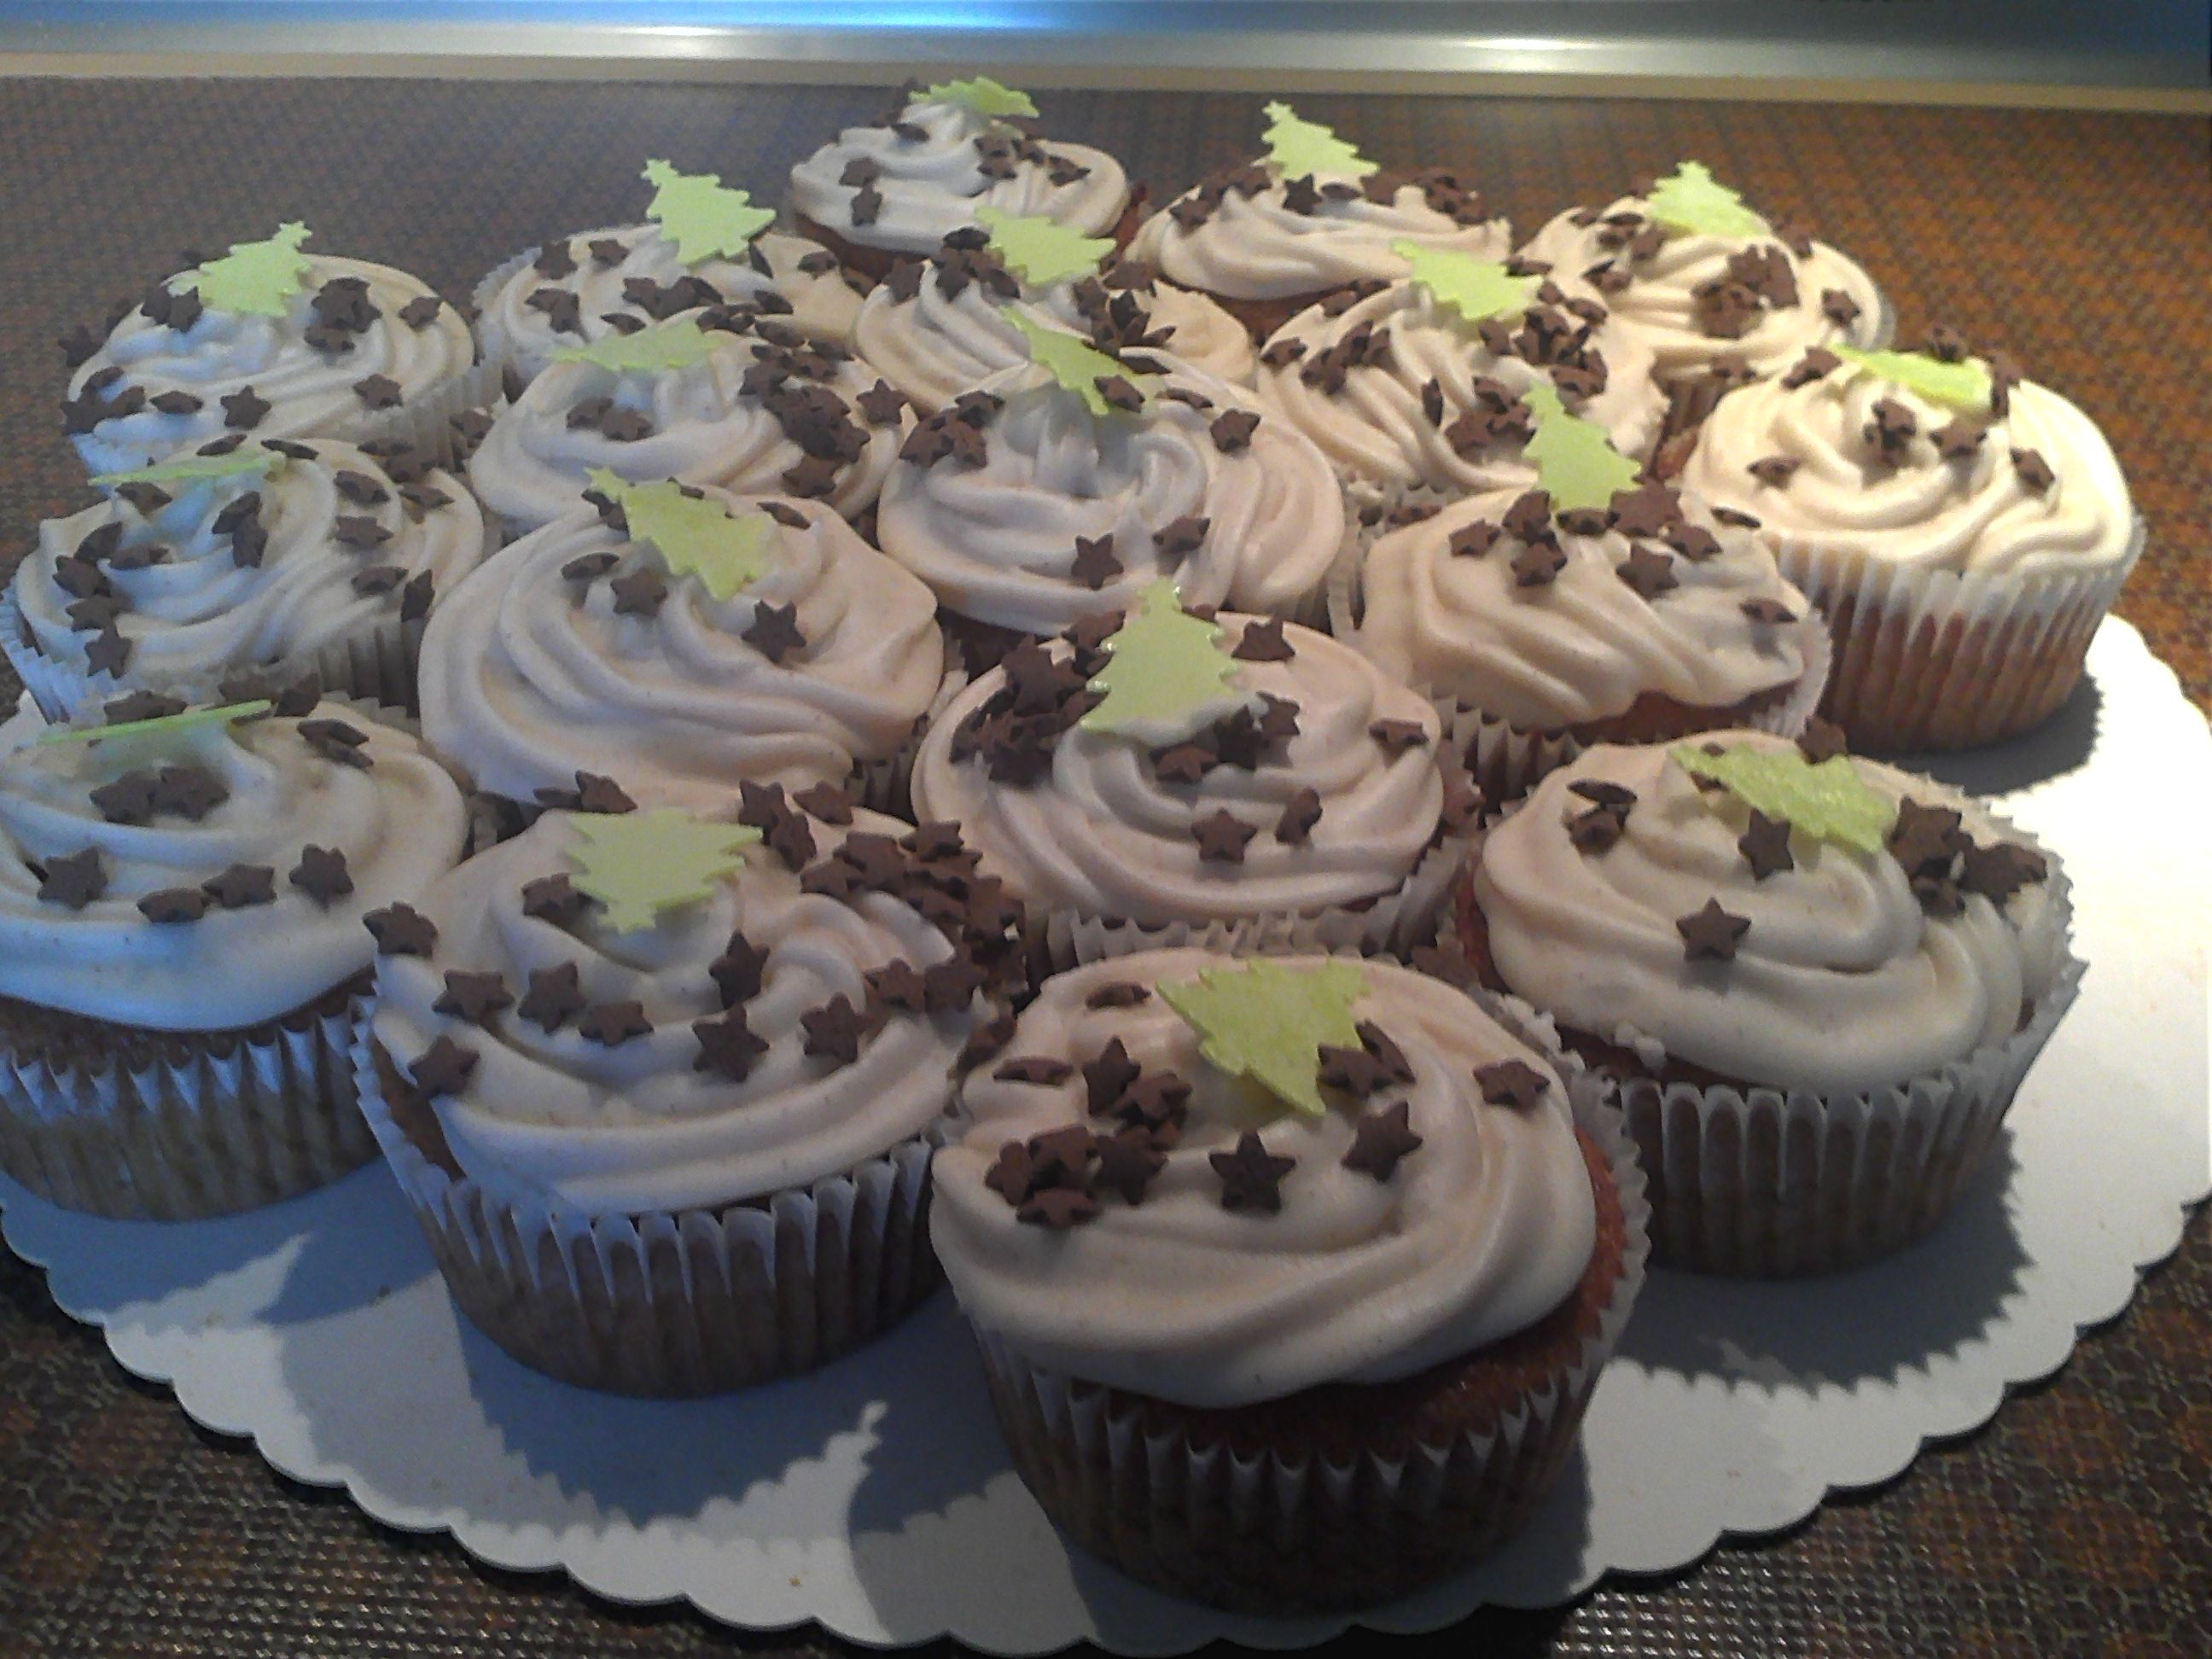 gingerbread-cupcakes with cinnamon-frosting *yummy*